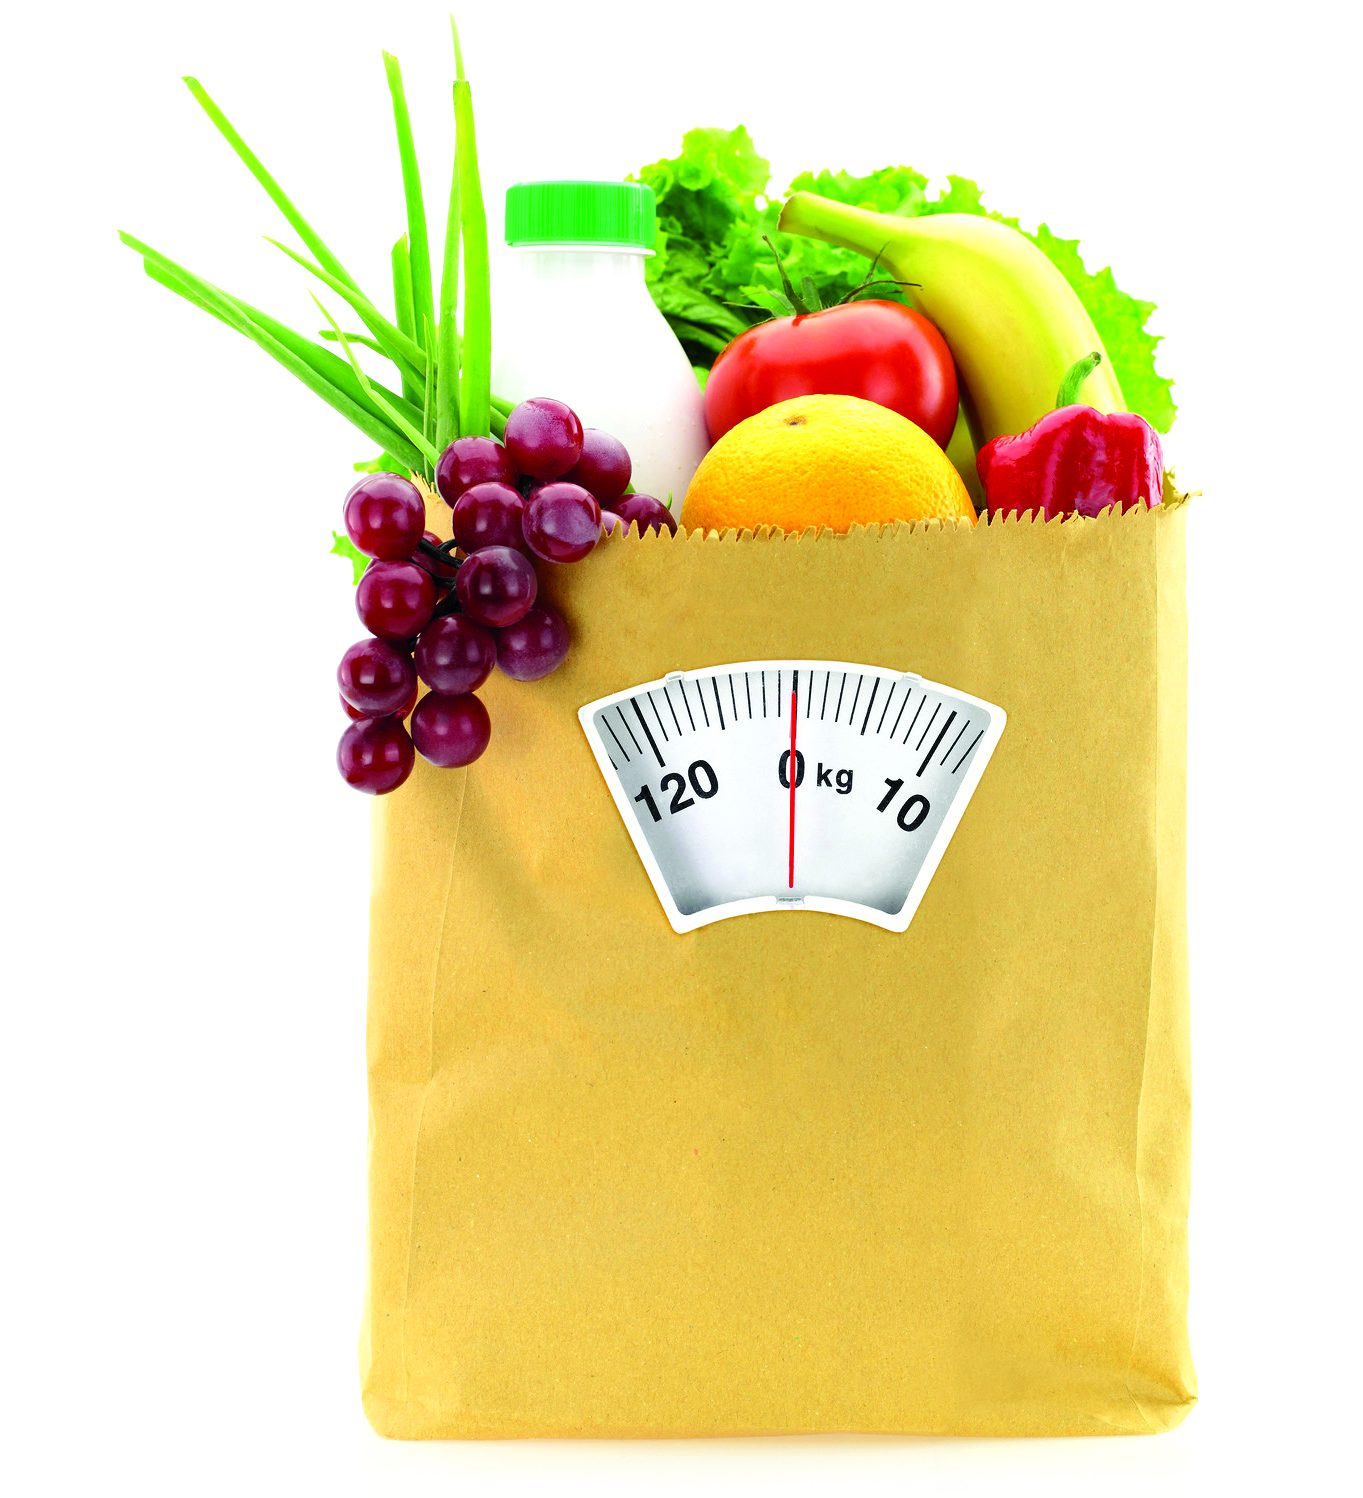 vegetables and fruits in a paper grocery bag